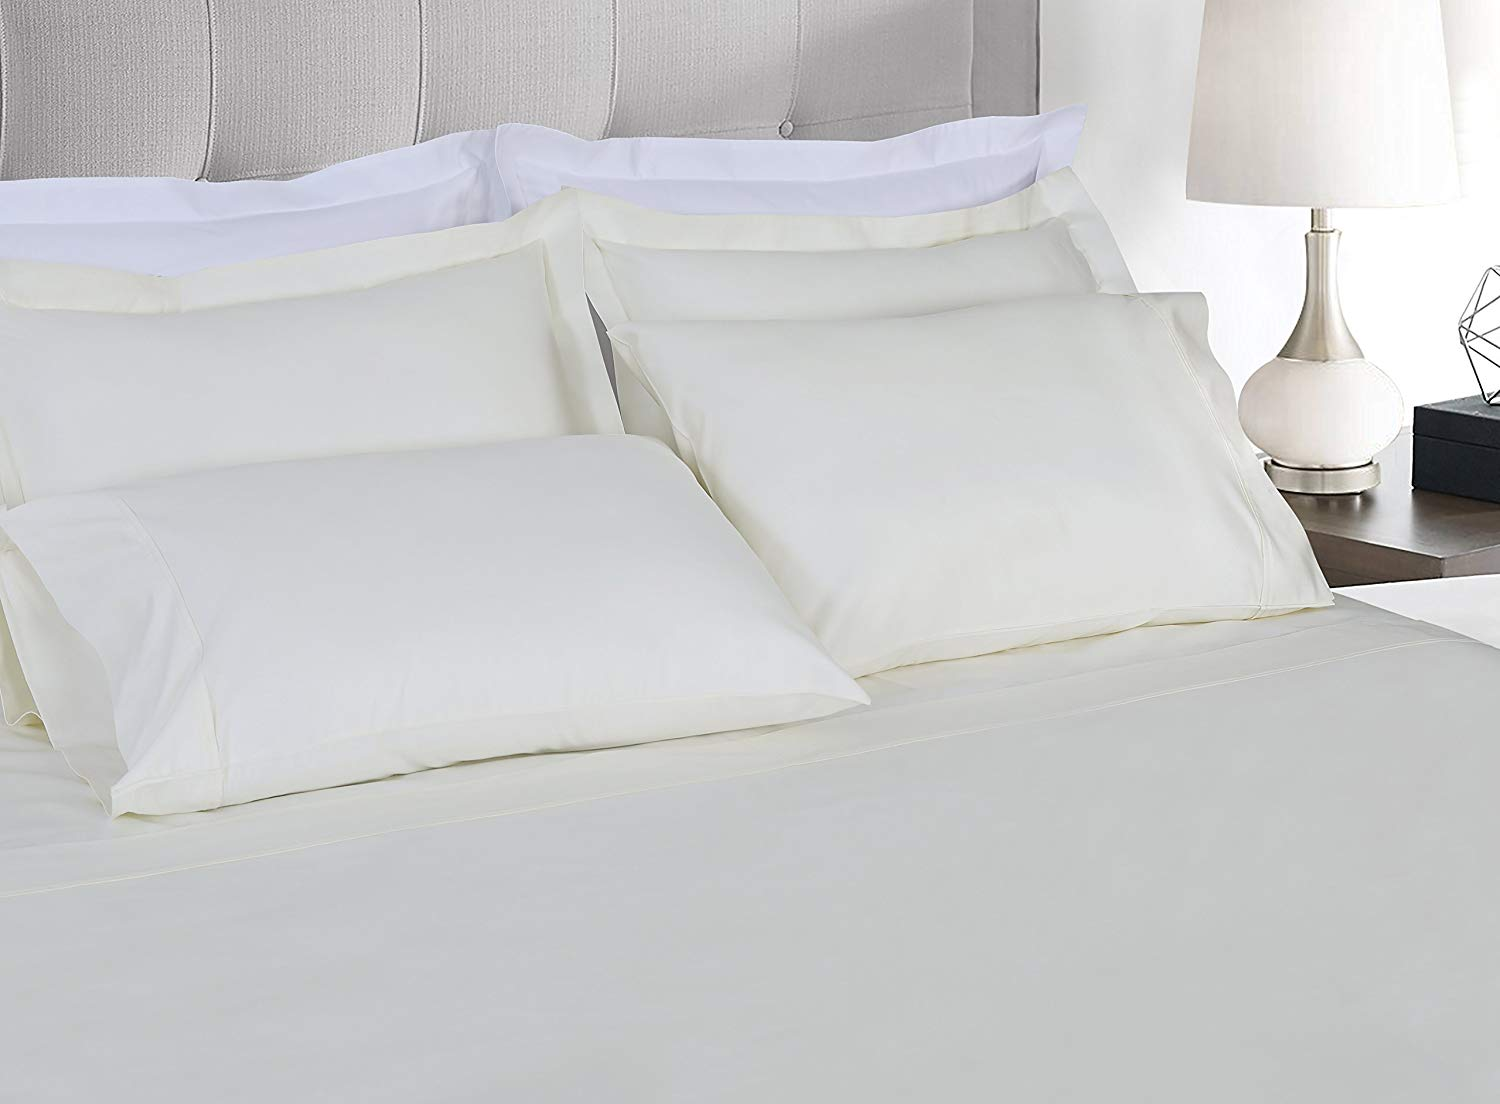 Image Of Threadmill Home Linen 100% Supima Cotton Sheets - What Is Supima Cotton